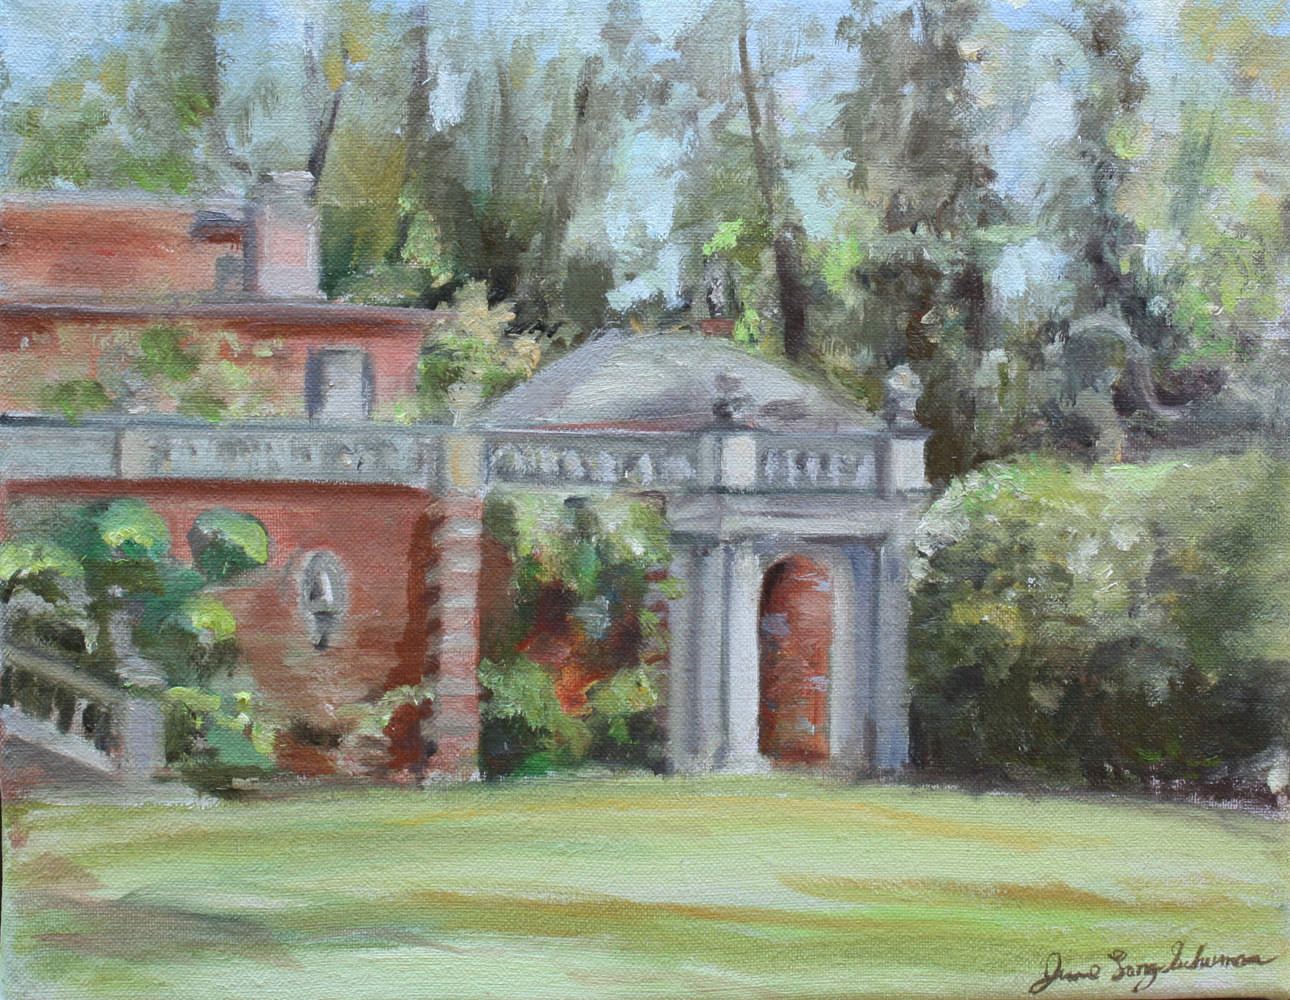 Oil painting Westbury Garden by June Long-schuman